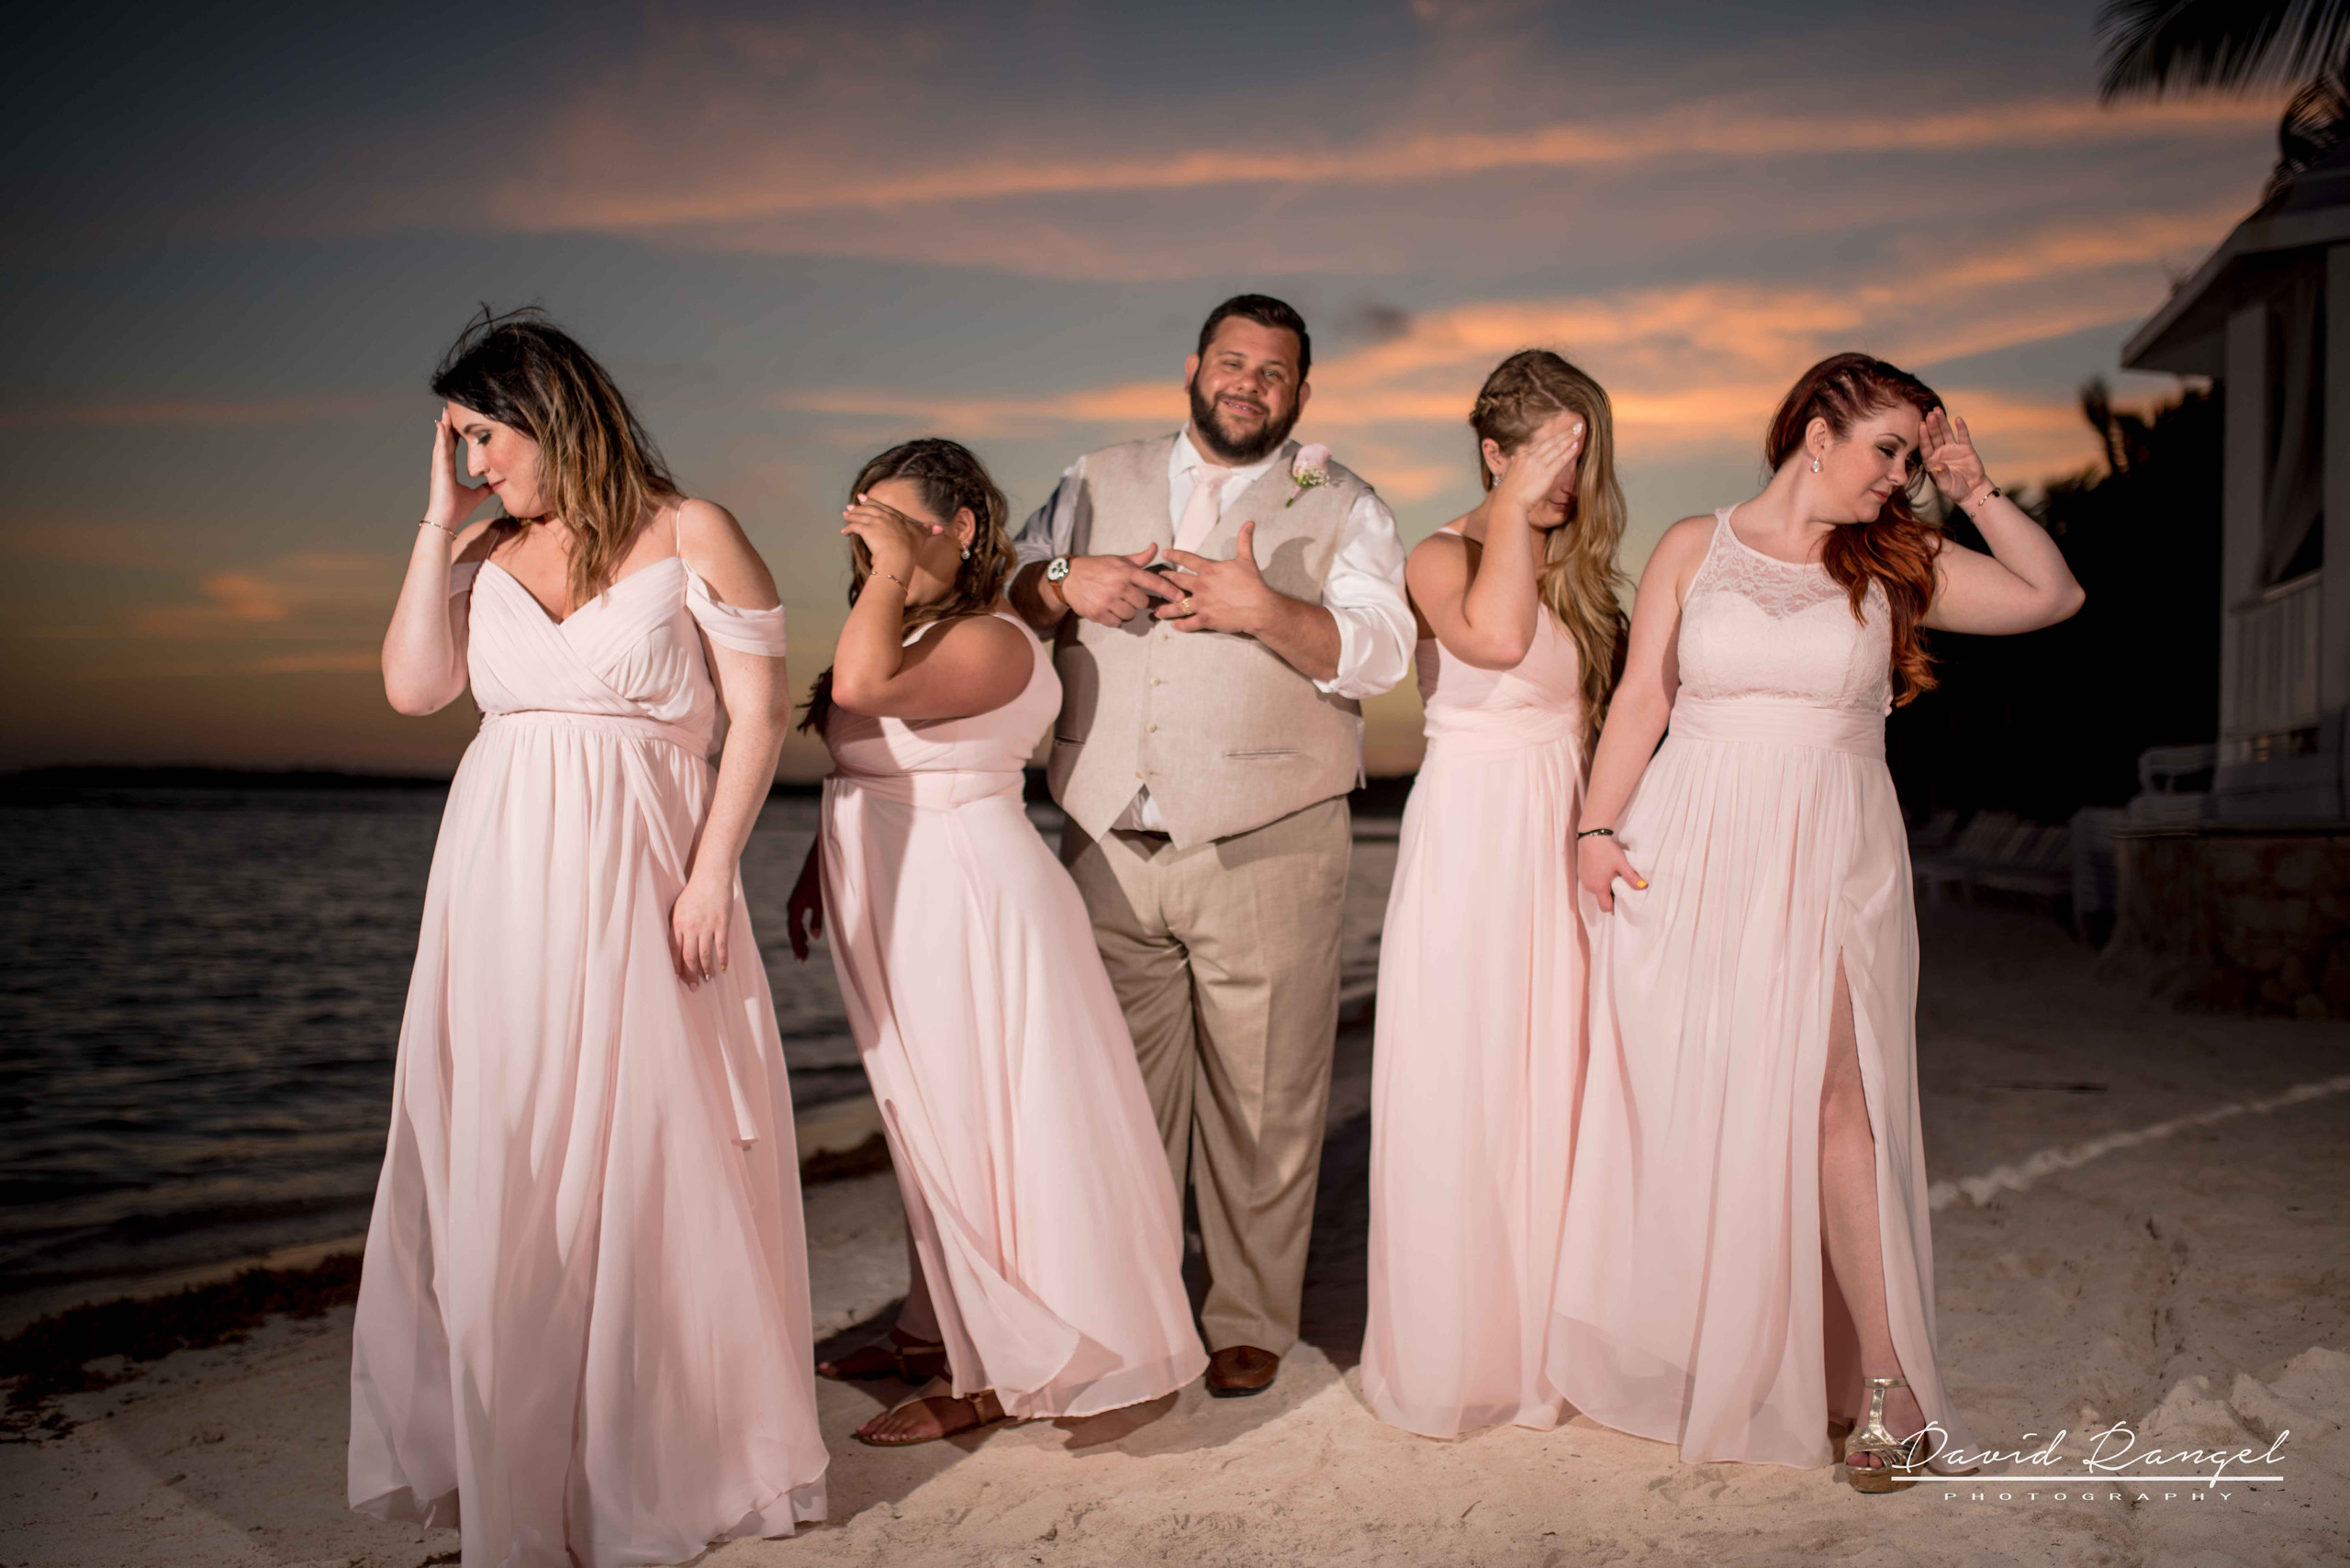 groom+bridesmaids+sunset+photo